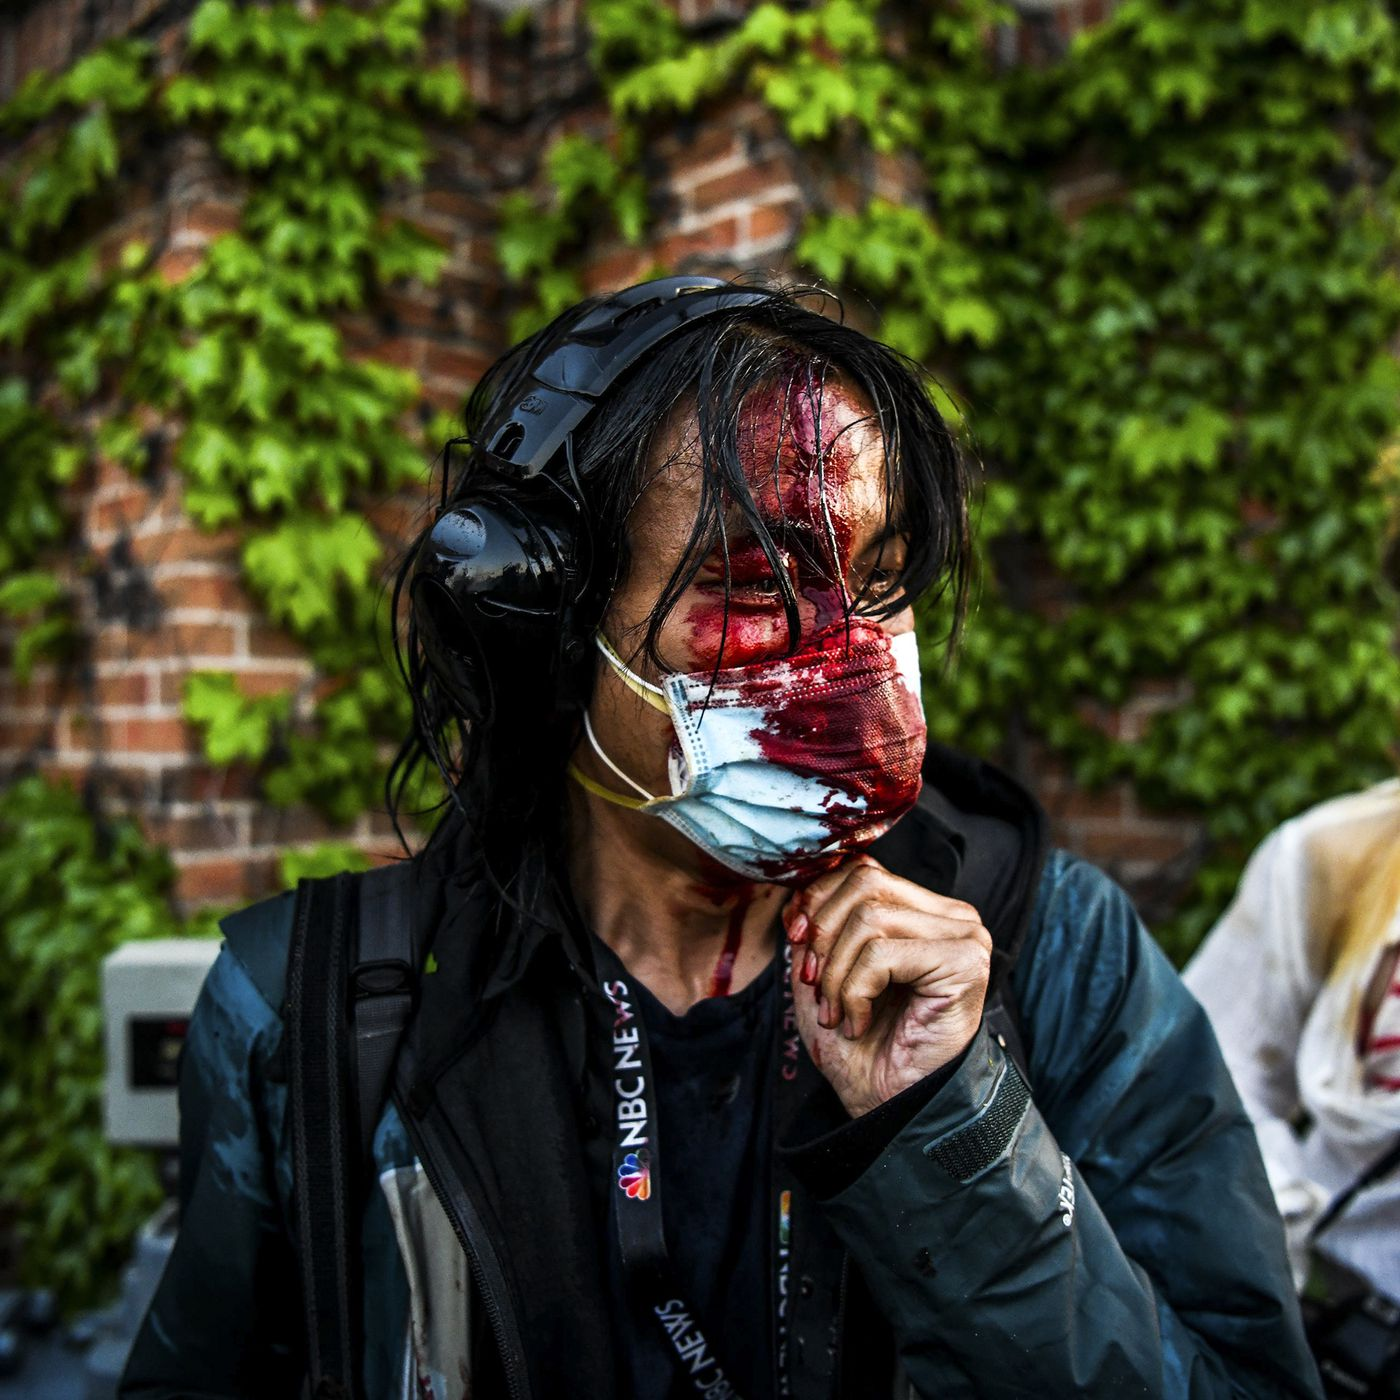 Halloween 2020 Journalist Police targeted journalists covering the George Floyd protests   Vox